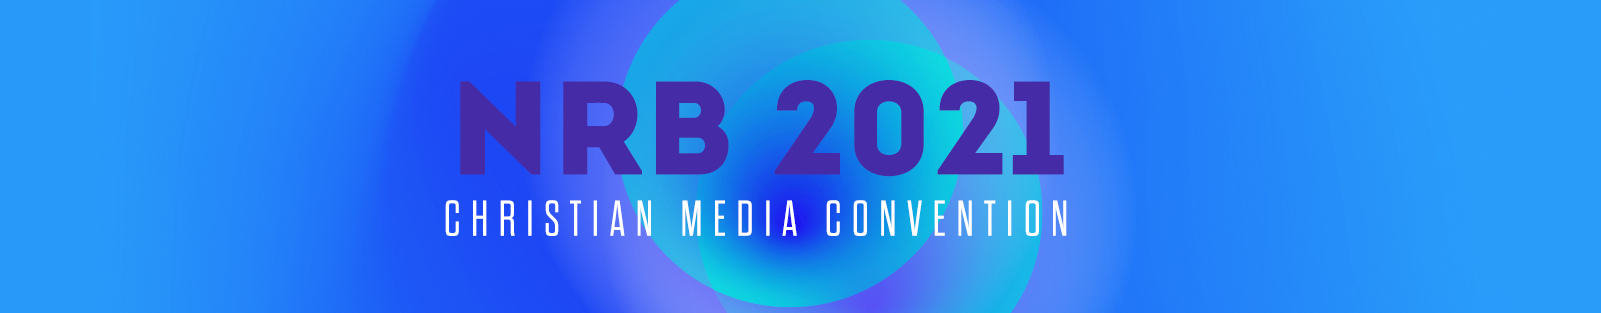 NRB 2021 - Christian Media Convention